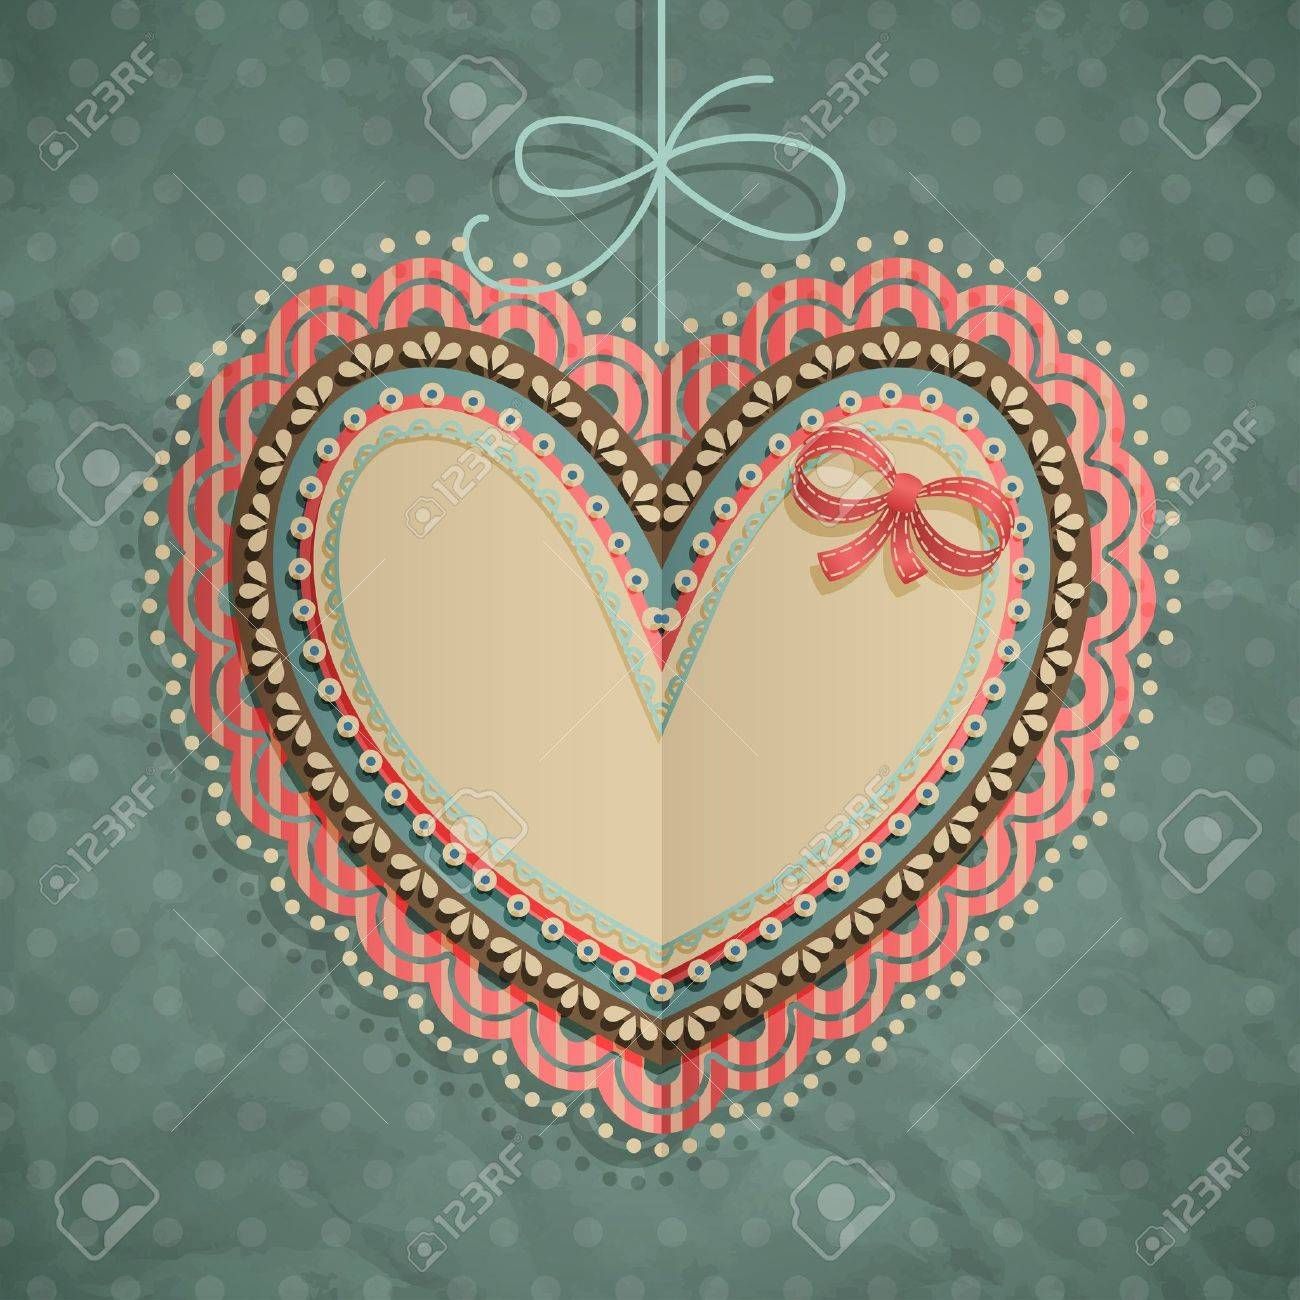 Valentine s Day vintage card with heart and place for text Stock Vector - 14748538